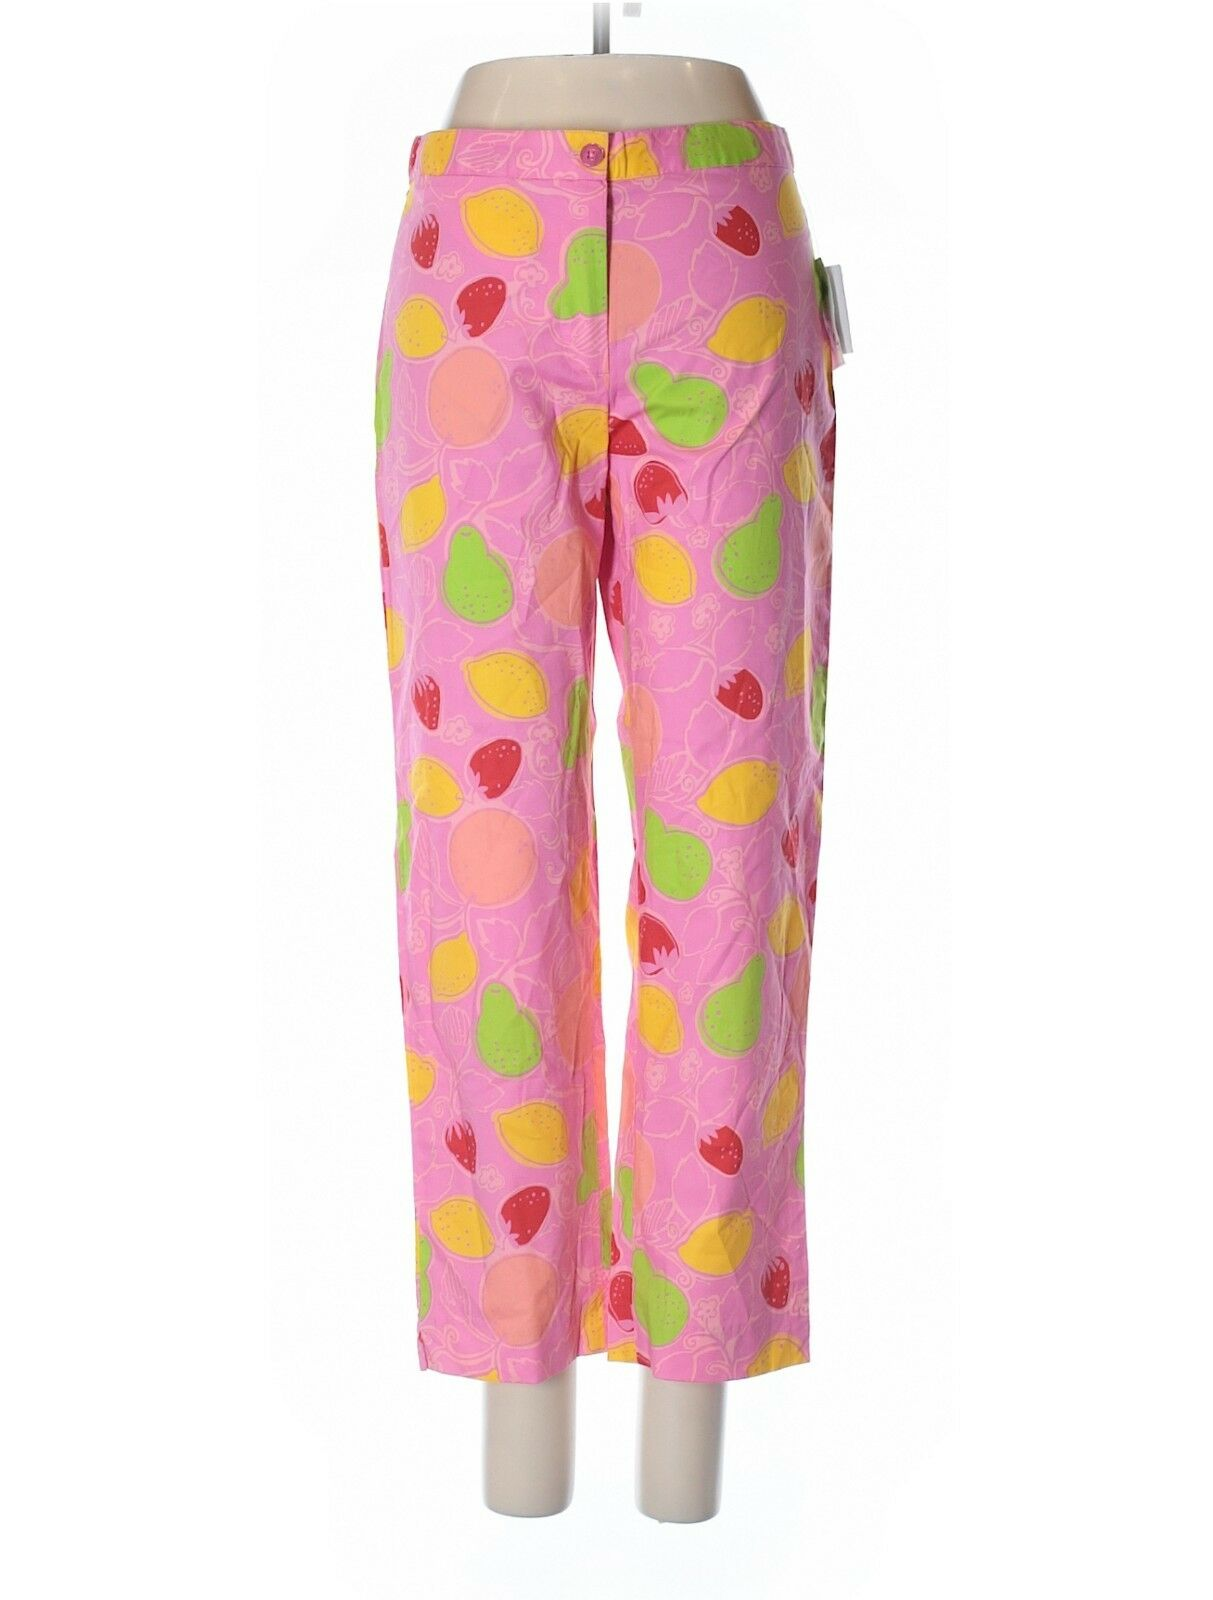 Brand New NWT Lilly Pulitzer Pink Fruit Pants Retail  155